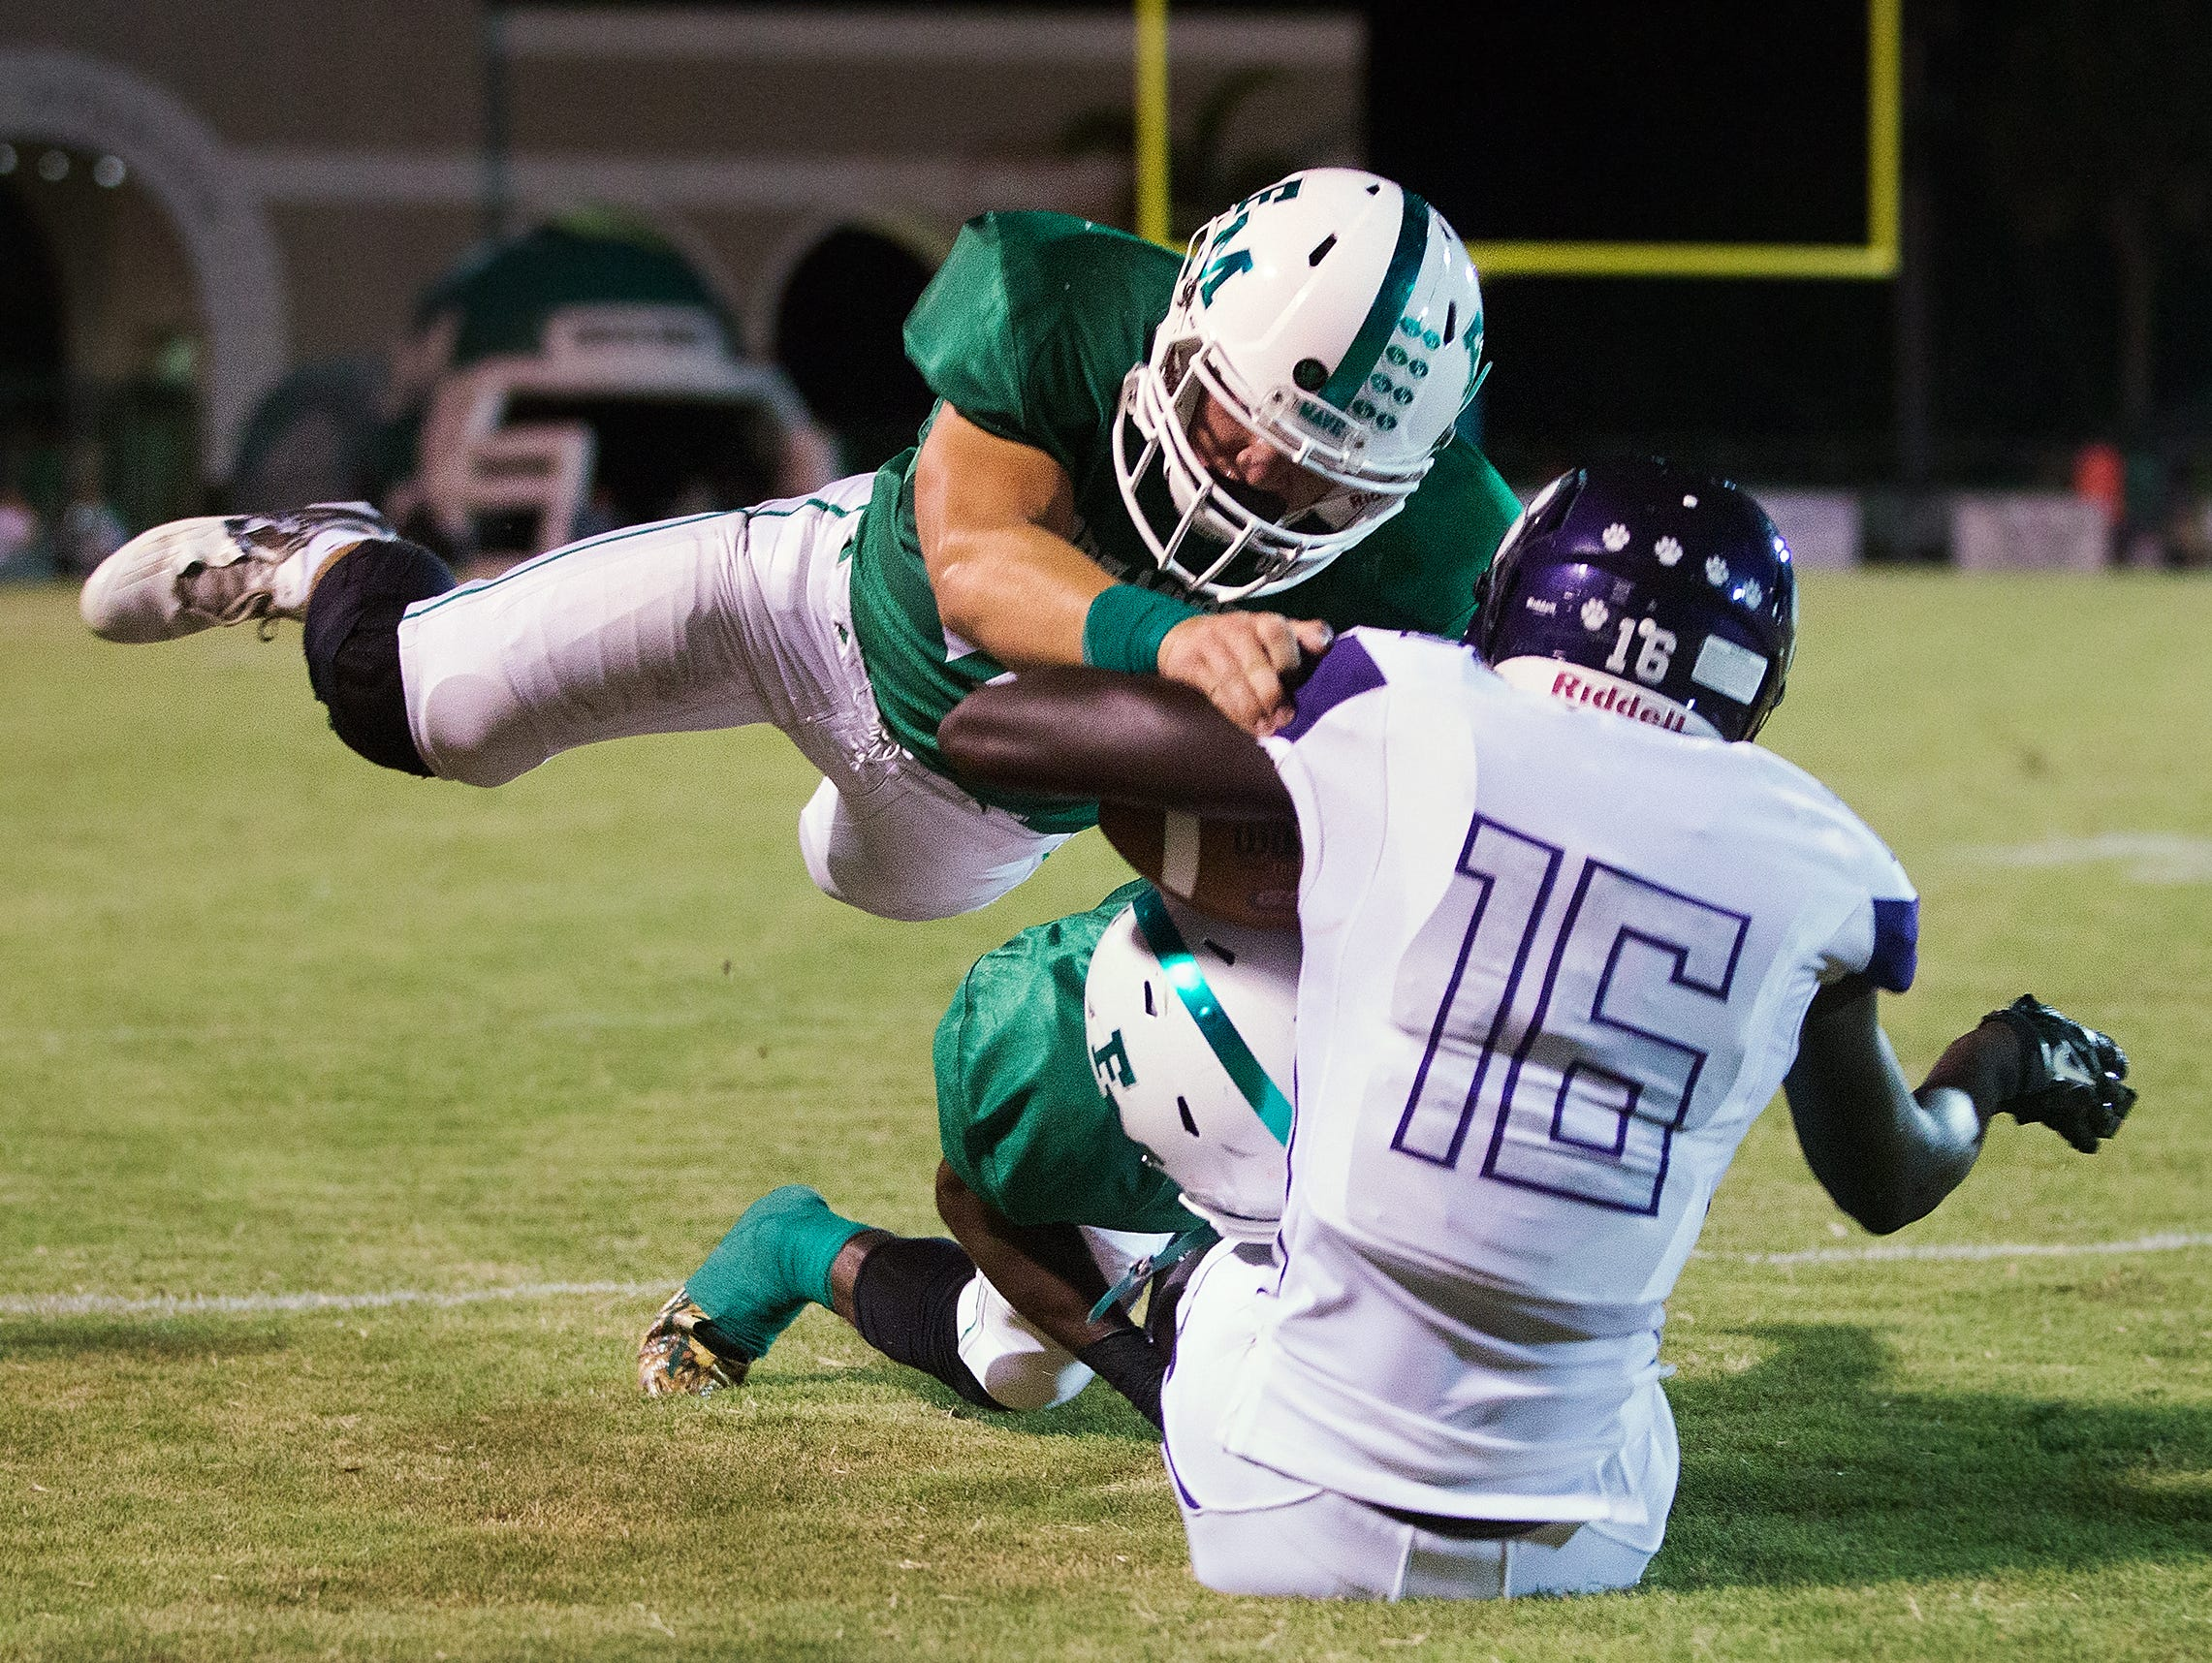 Fort Myers High School's Treyvon Curtis, bottom, and Matt McQuinn, top, tackle Cypress Lake's Tim Addison during second quarter play Friday at Fort Myers High School.